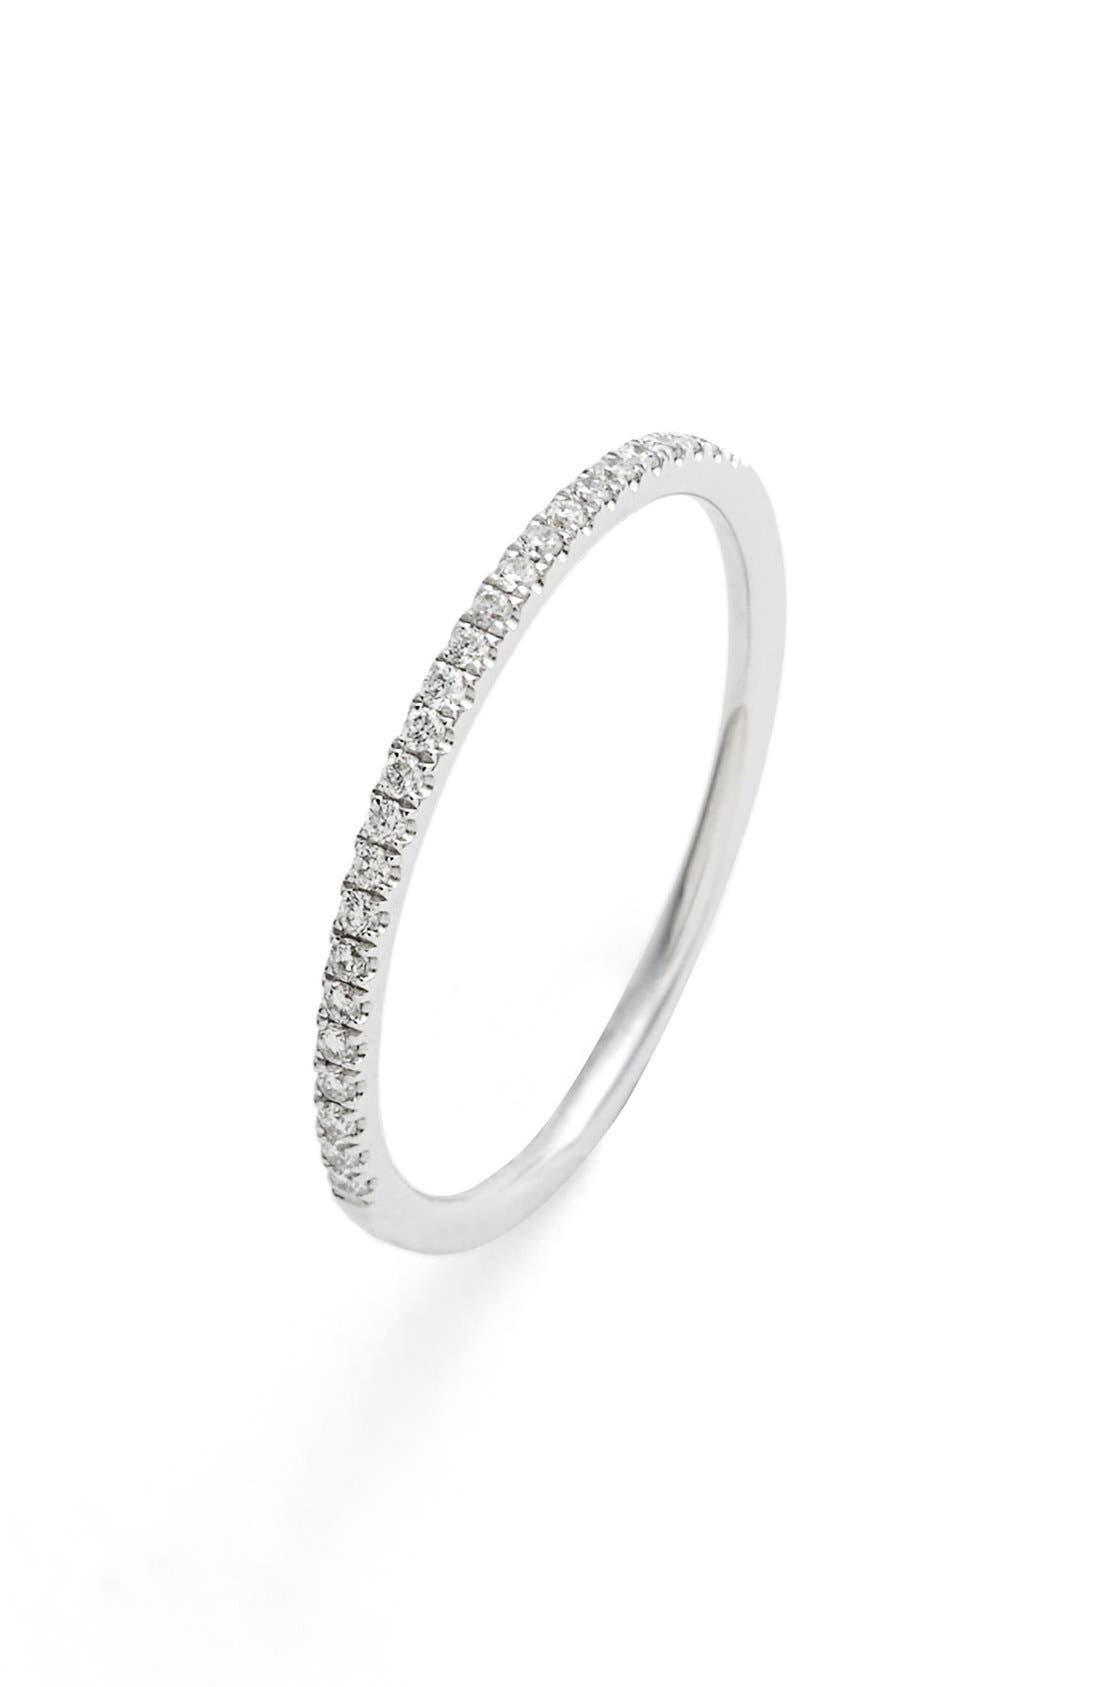 Alternate Image 2  - Bony Levy 'Stackable' Straight Diamond Band Ring (Nordstrom Exclusive)